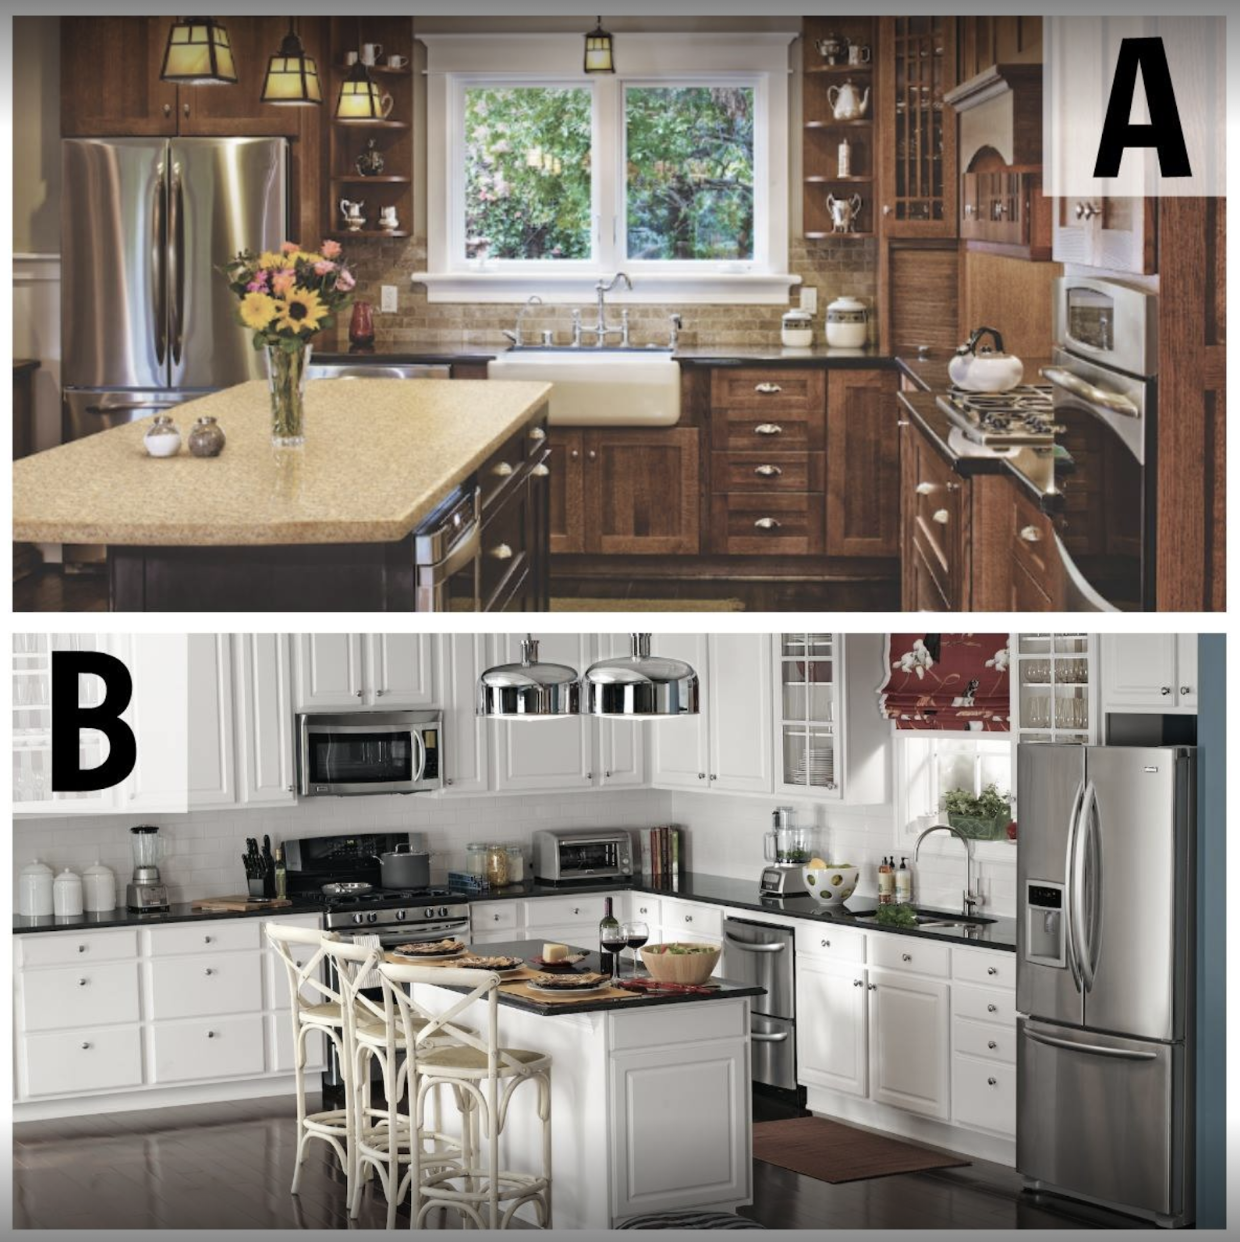 Budget-friendly ways to improve your kitchen with Sears Home Services